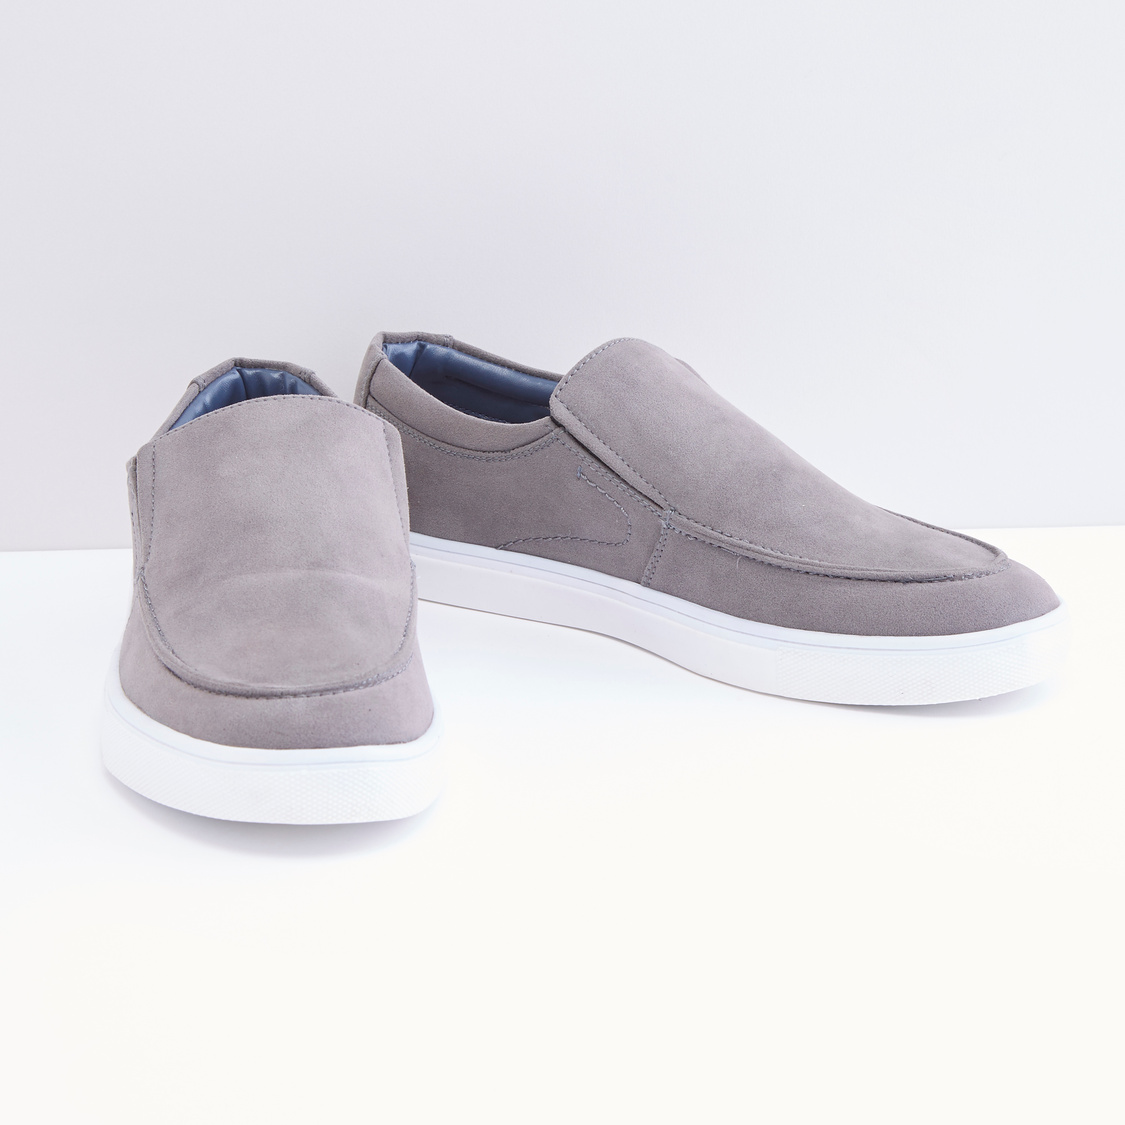 Slip on Shoes with Stitch Detail